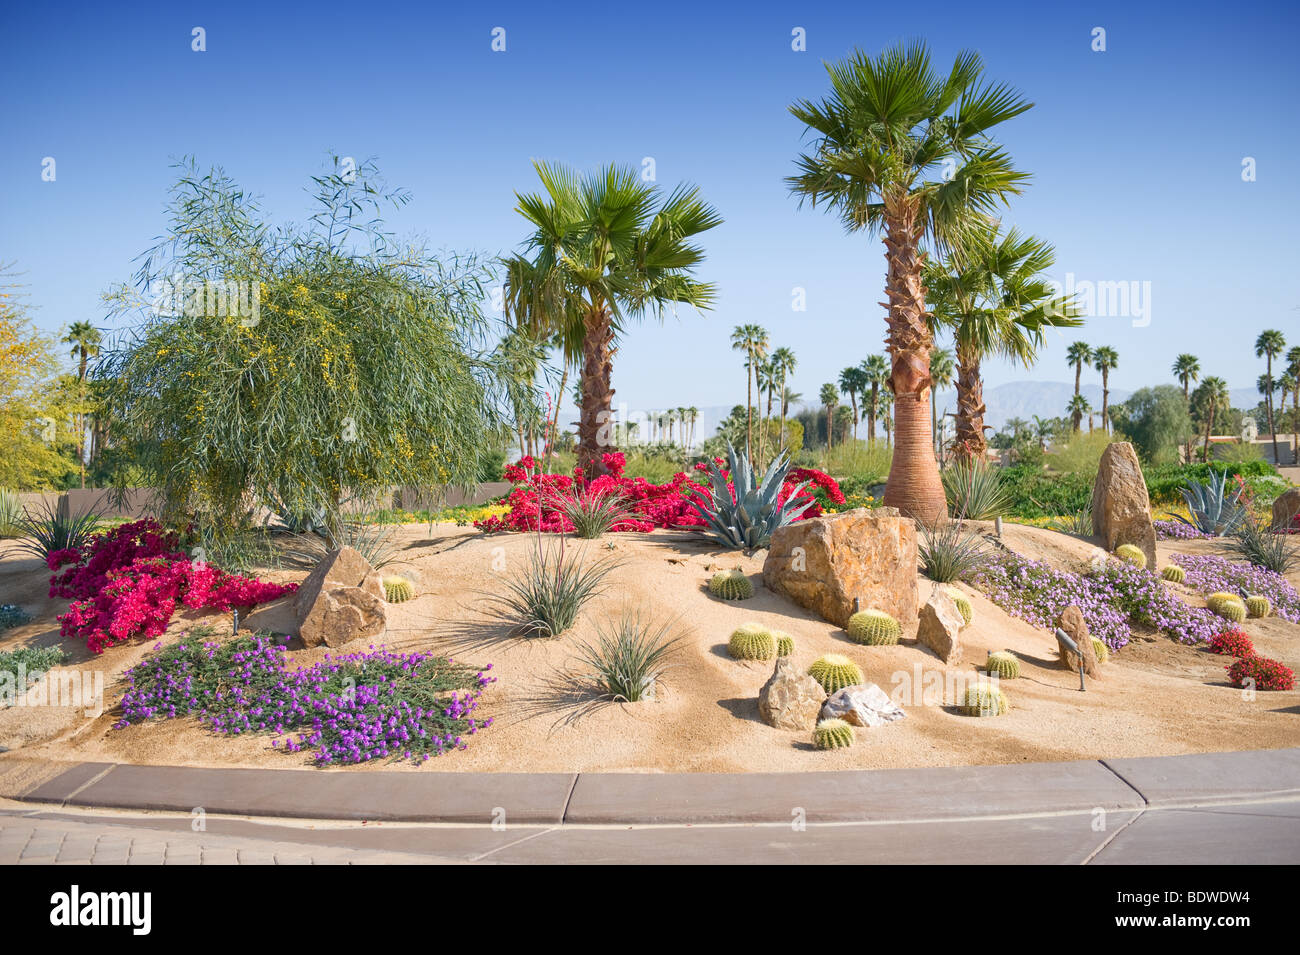 Desert landscape plants outdoor goods Home goods palm beach gardens